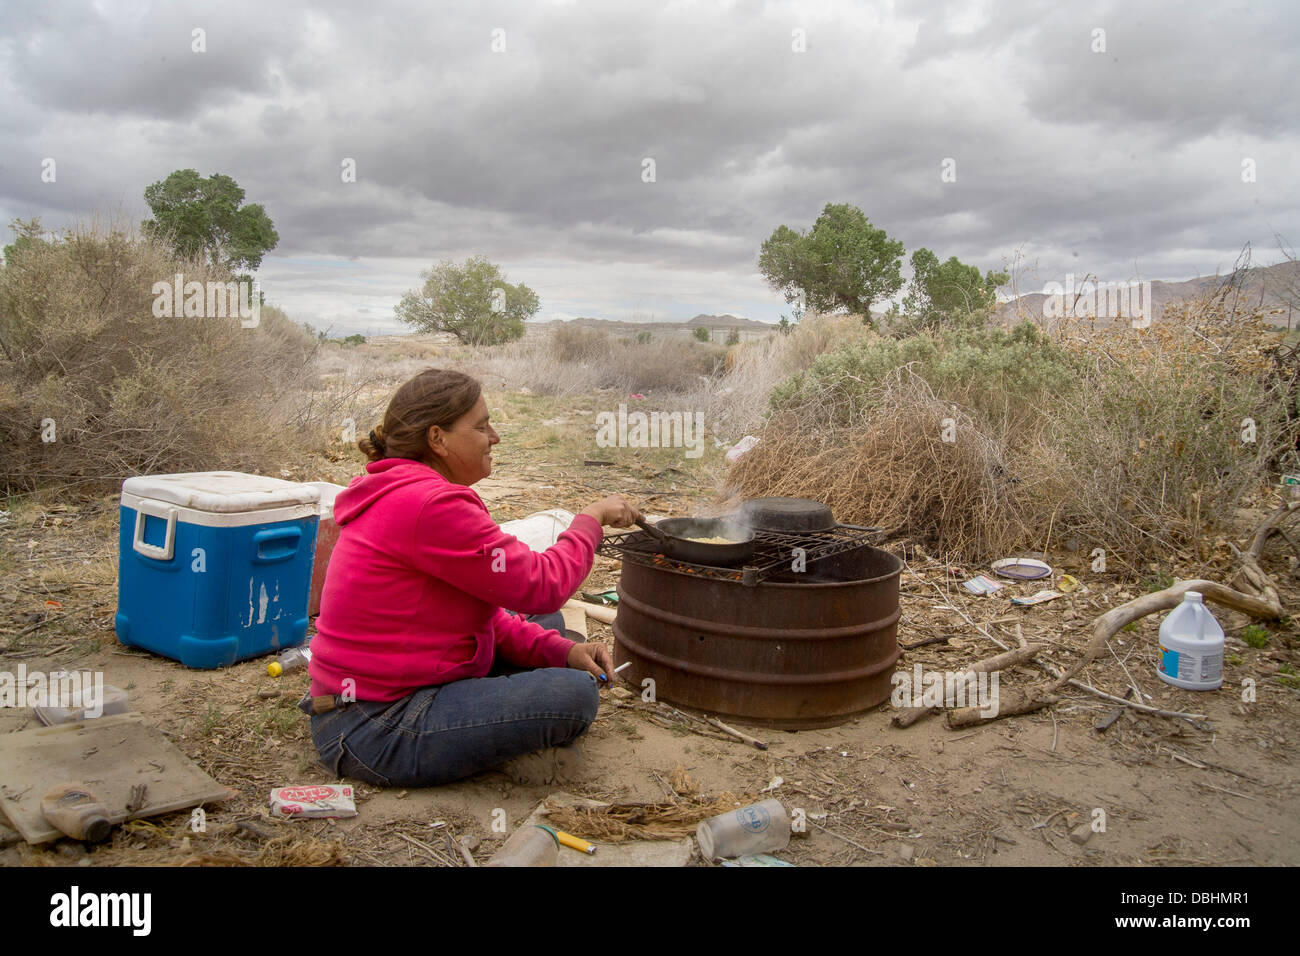 A homeless woman cooks corn on a primitive outdoor grill a primitive outdoor encampment in the desert town of Victorville, - Stock Image